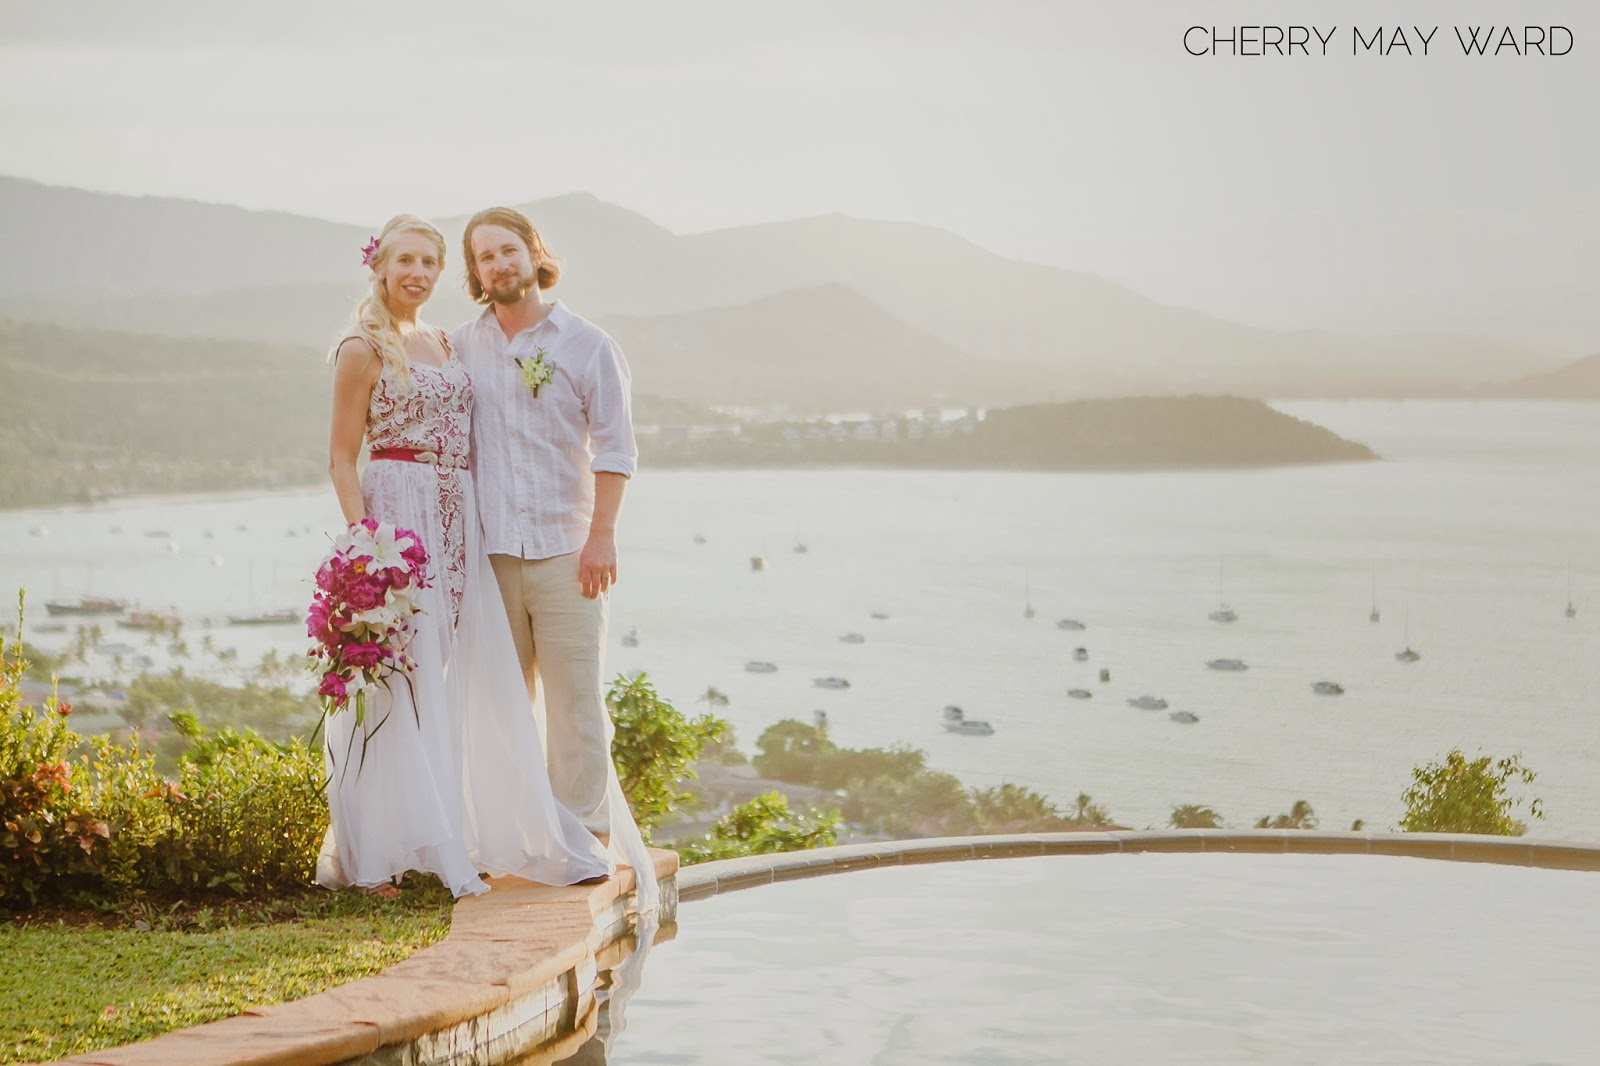 Thailand villa wedding with the most beautiful view, view over the water, view with pool over the sea, infinity pool, wedding in Thailand, sunset view from private villa, wedding on to of a hill with sunset view on Koh Samui